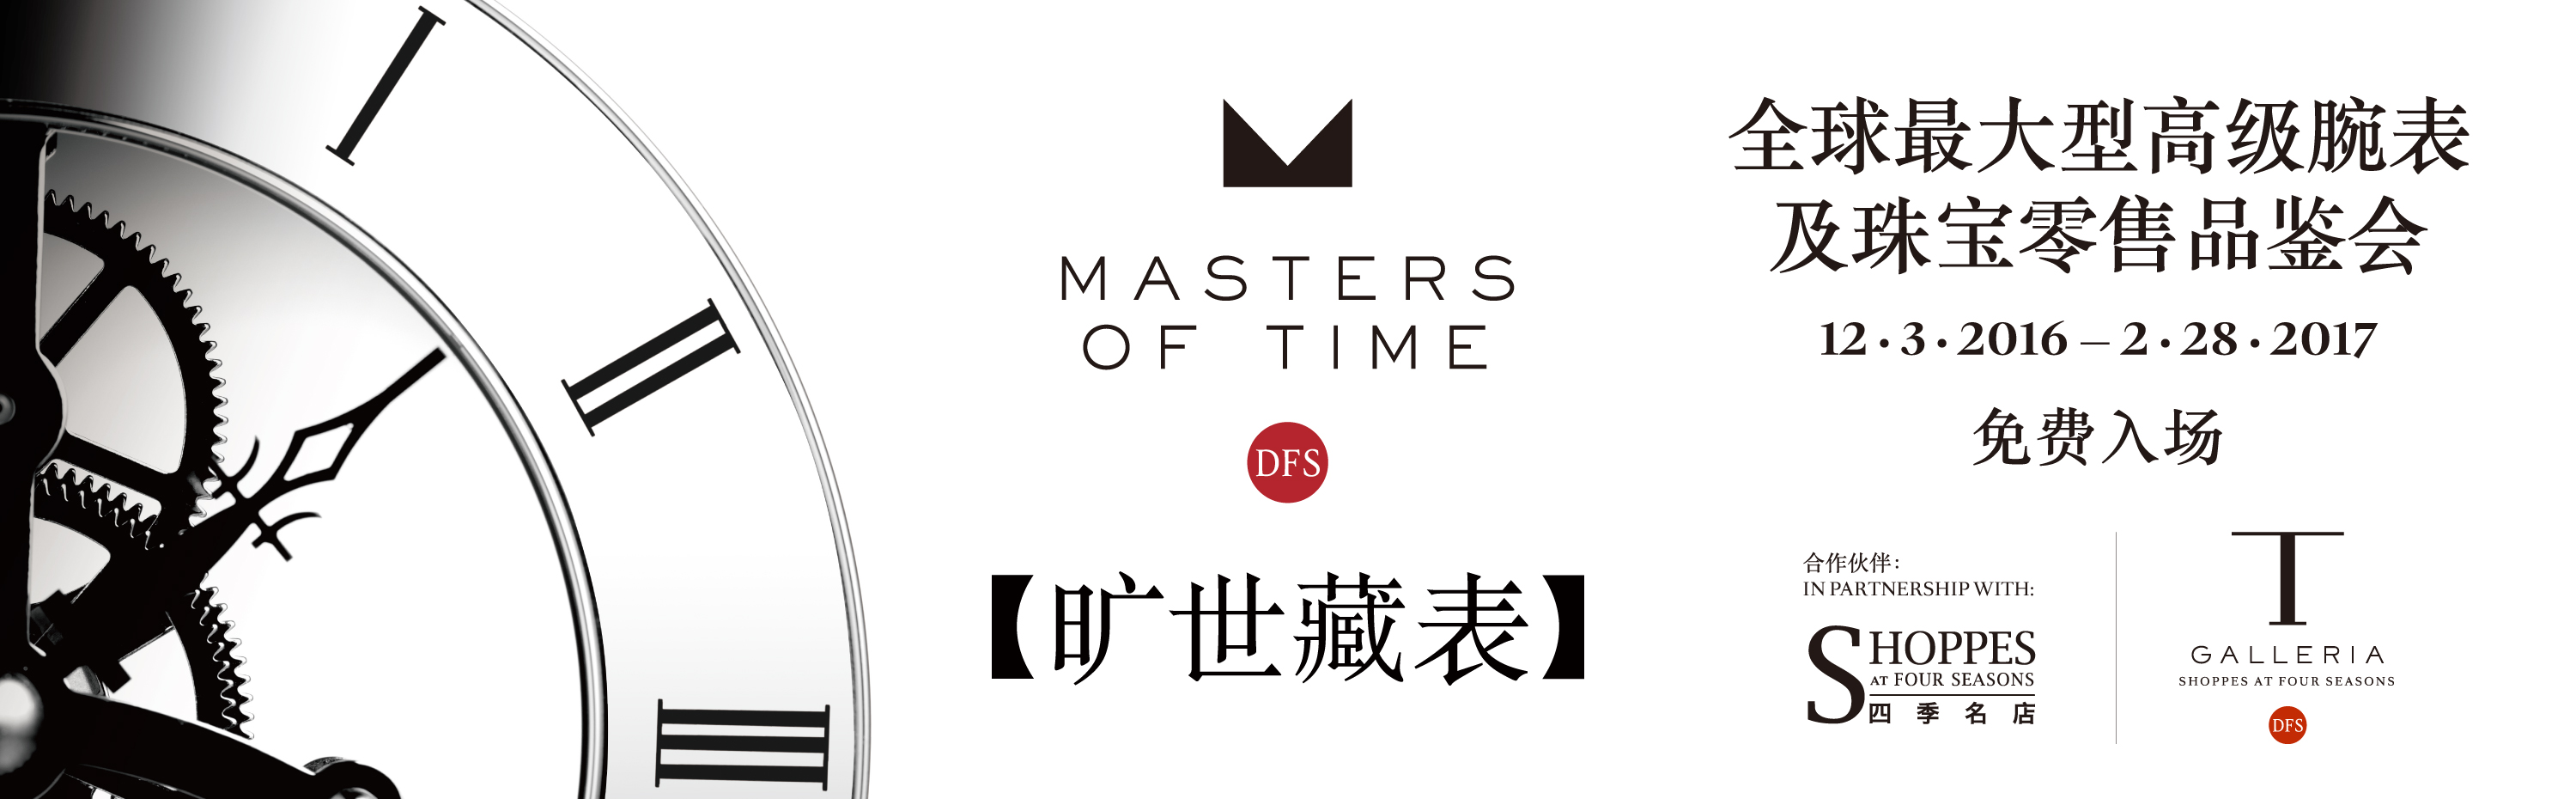 DFS MASTERS OF TIME 2016 2016年DFS【旷世藏表】品鉴会